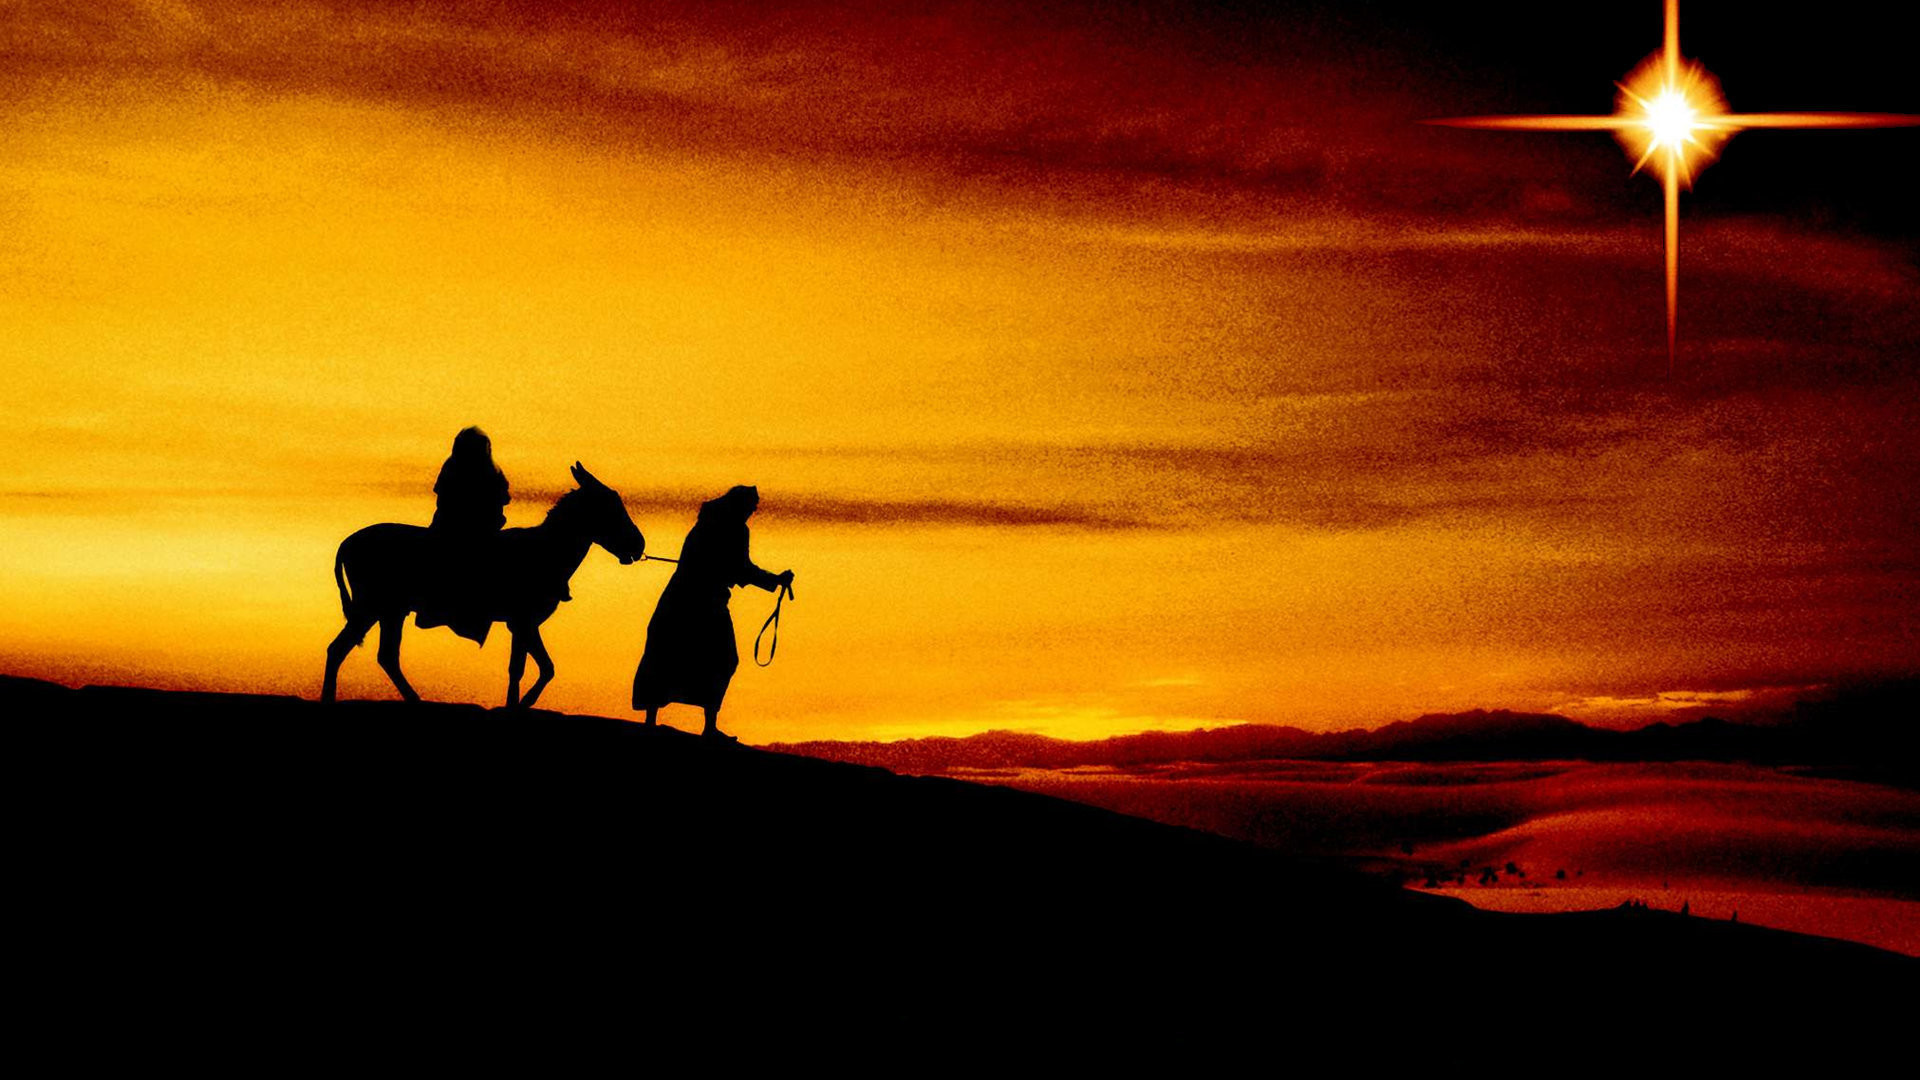 hd-wallpapers-download-the-nativity-story-wallpaper-255331-